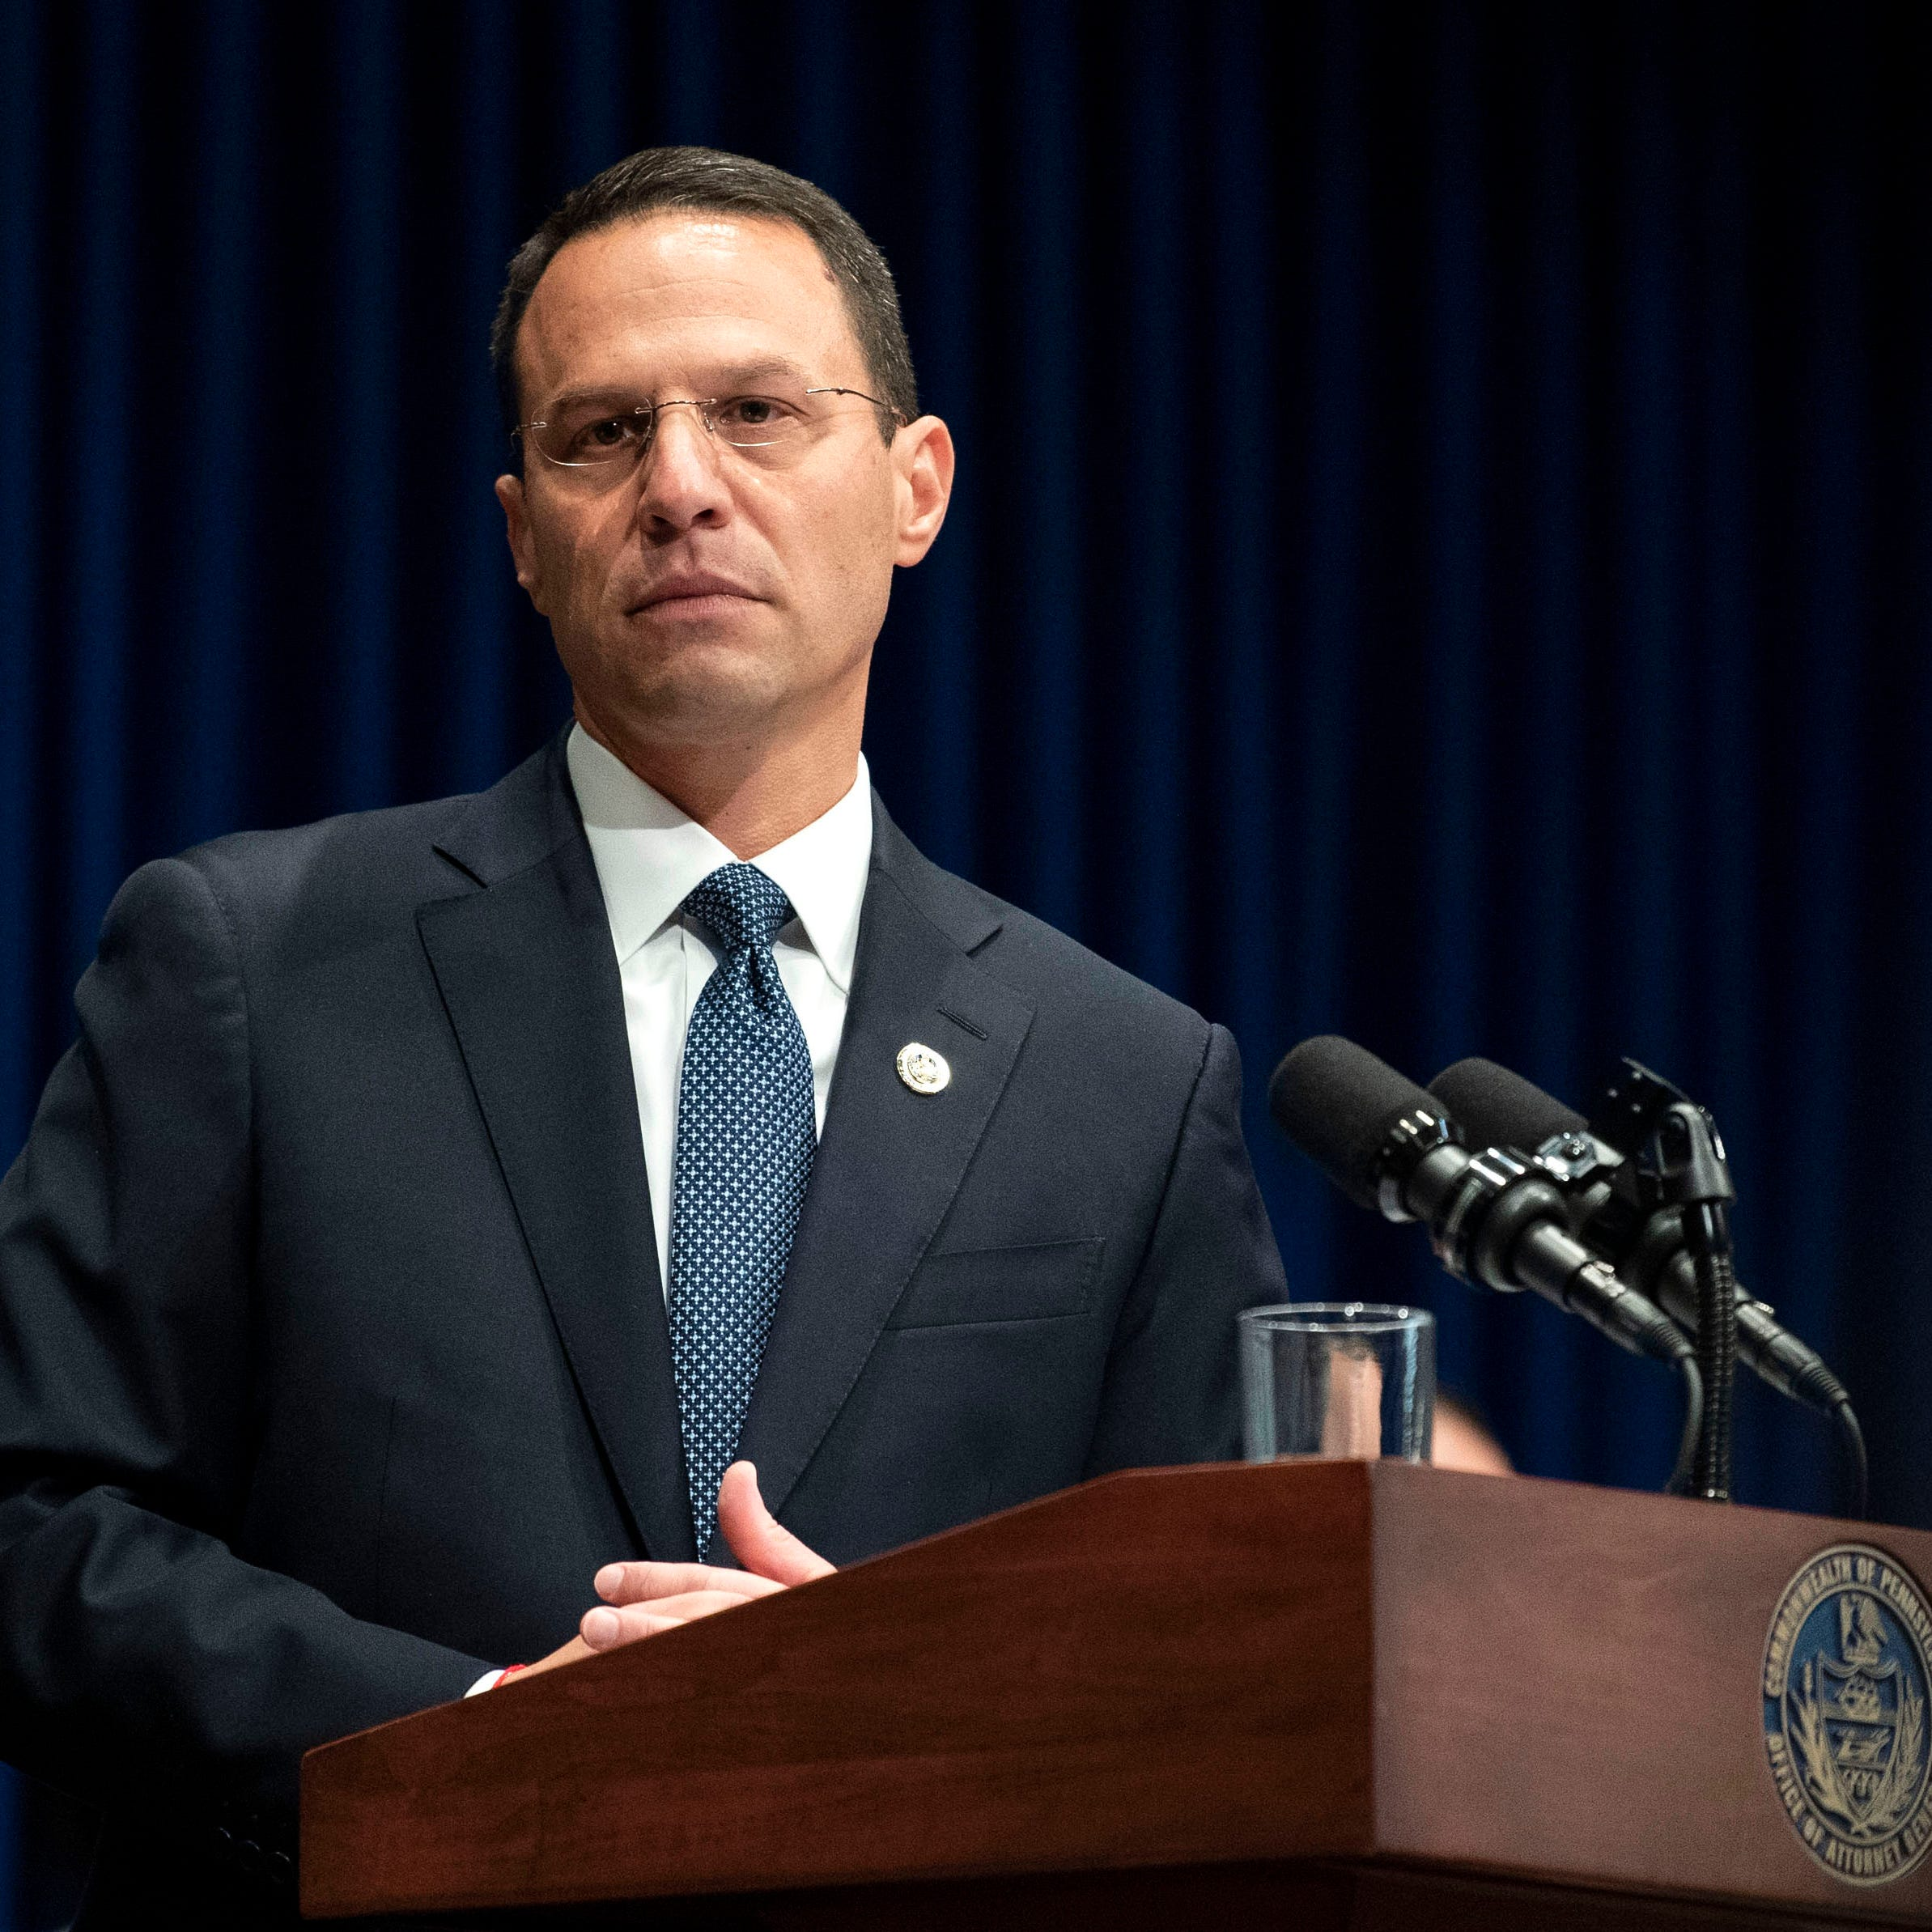 Attorney General Josh Shapiro outlined the findings of the grand jury investigation into six Catholic diocese in Pennsylvania.